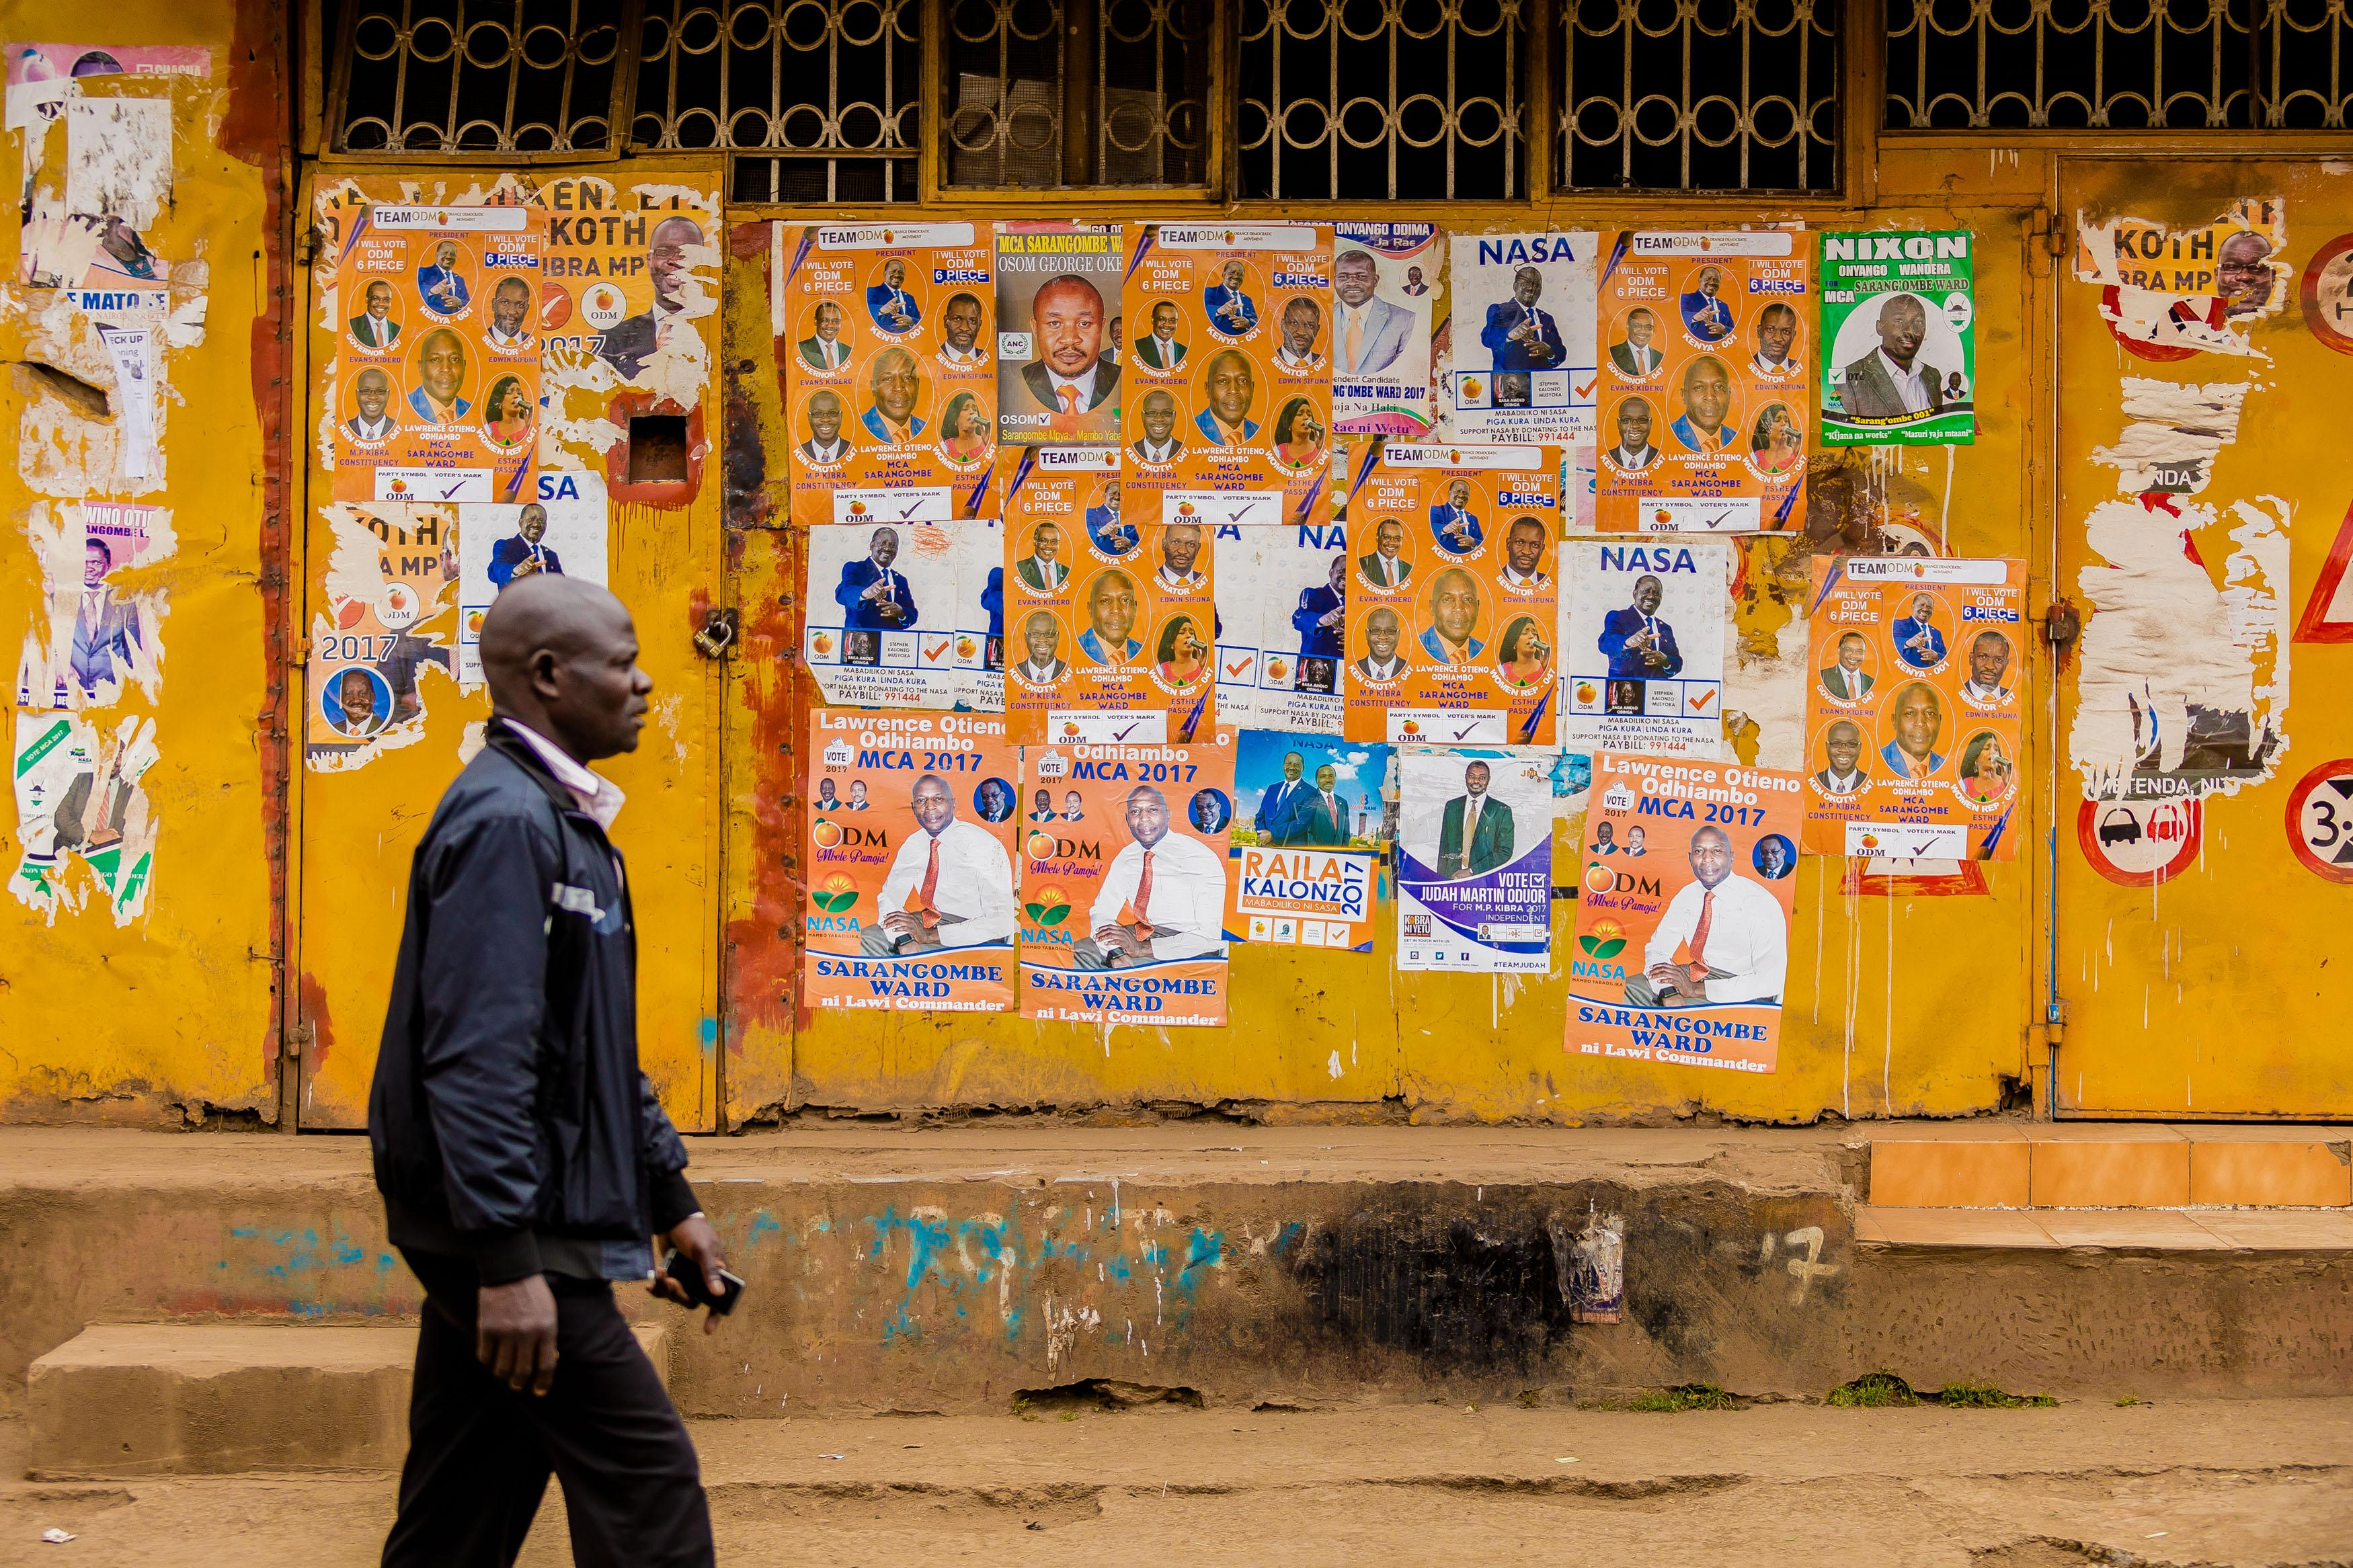 Posters for Kenya's 2017 general election. The election results were close between President Kenyatta and his main opponent, Raila Odinga, but there were many other candidates on the ballot.